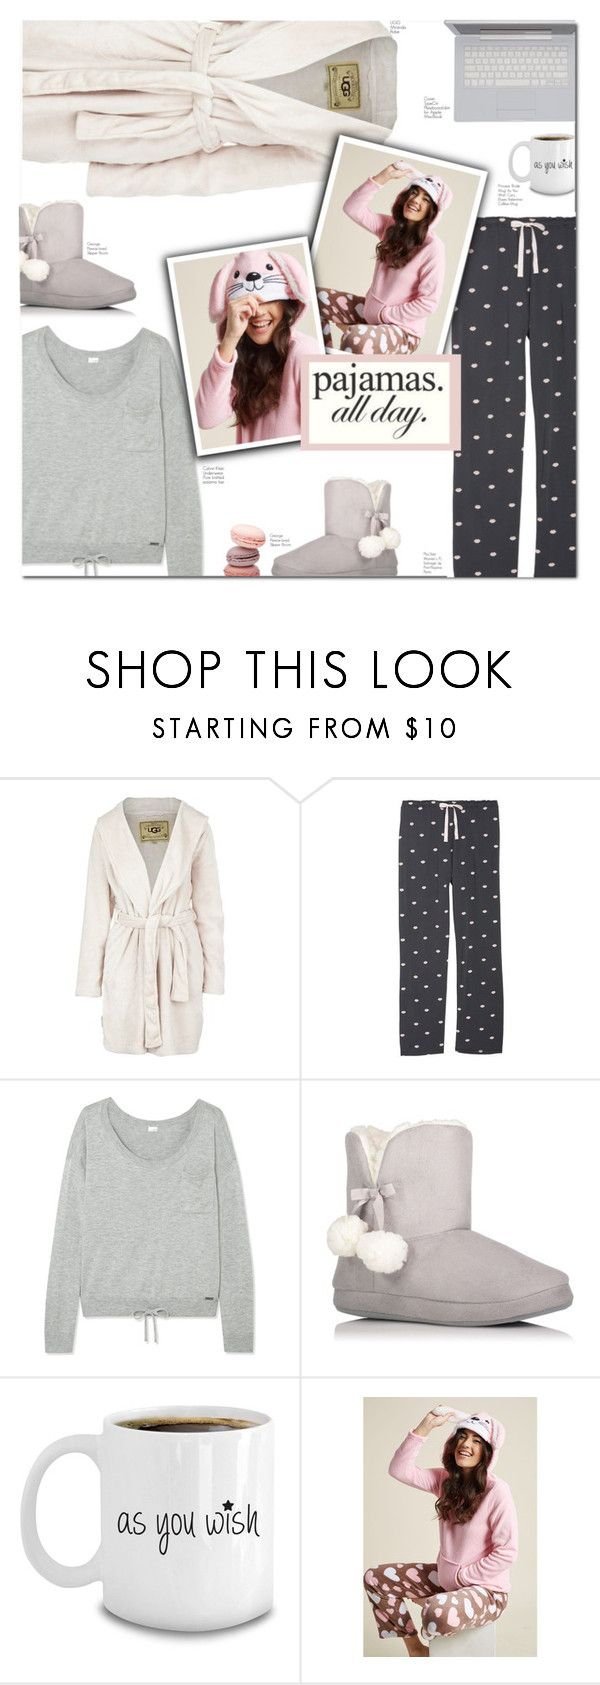 """""""pajamas all day :)"""" by jadeisback ❤ liked on Polyvore featuring UGG Australia, P.J. Salvage, Calvin Klein Underwear, George, LovelyLoungewear and plus size clothing"""